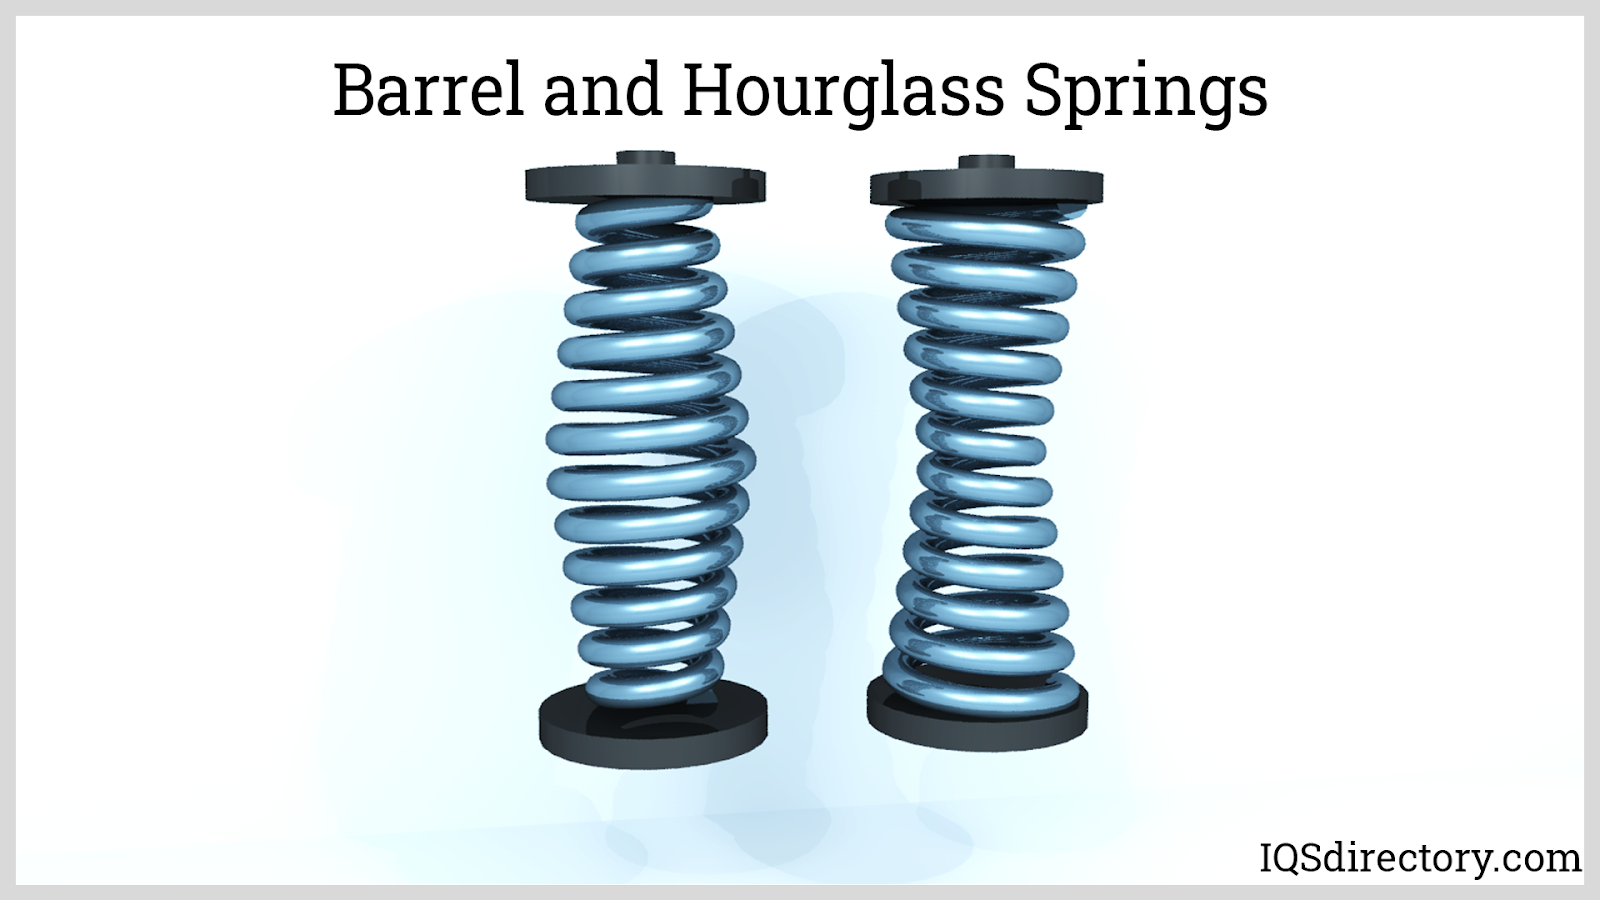 Barrel and Hourglass Springs